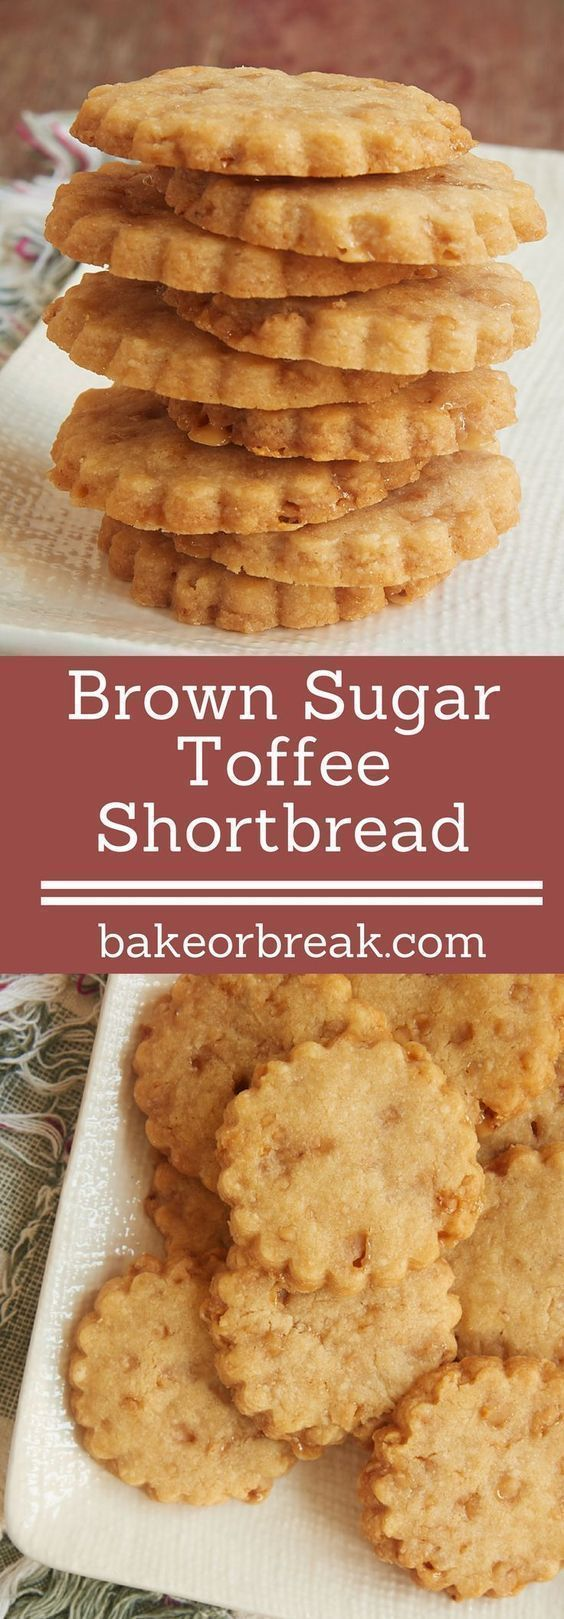 Brown Sugar Toffee Shortbread #kochenundbacken